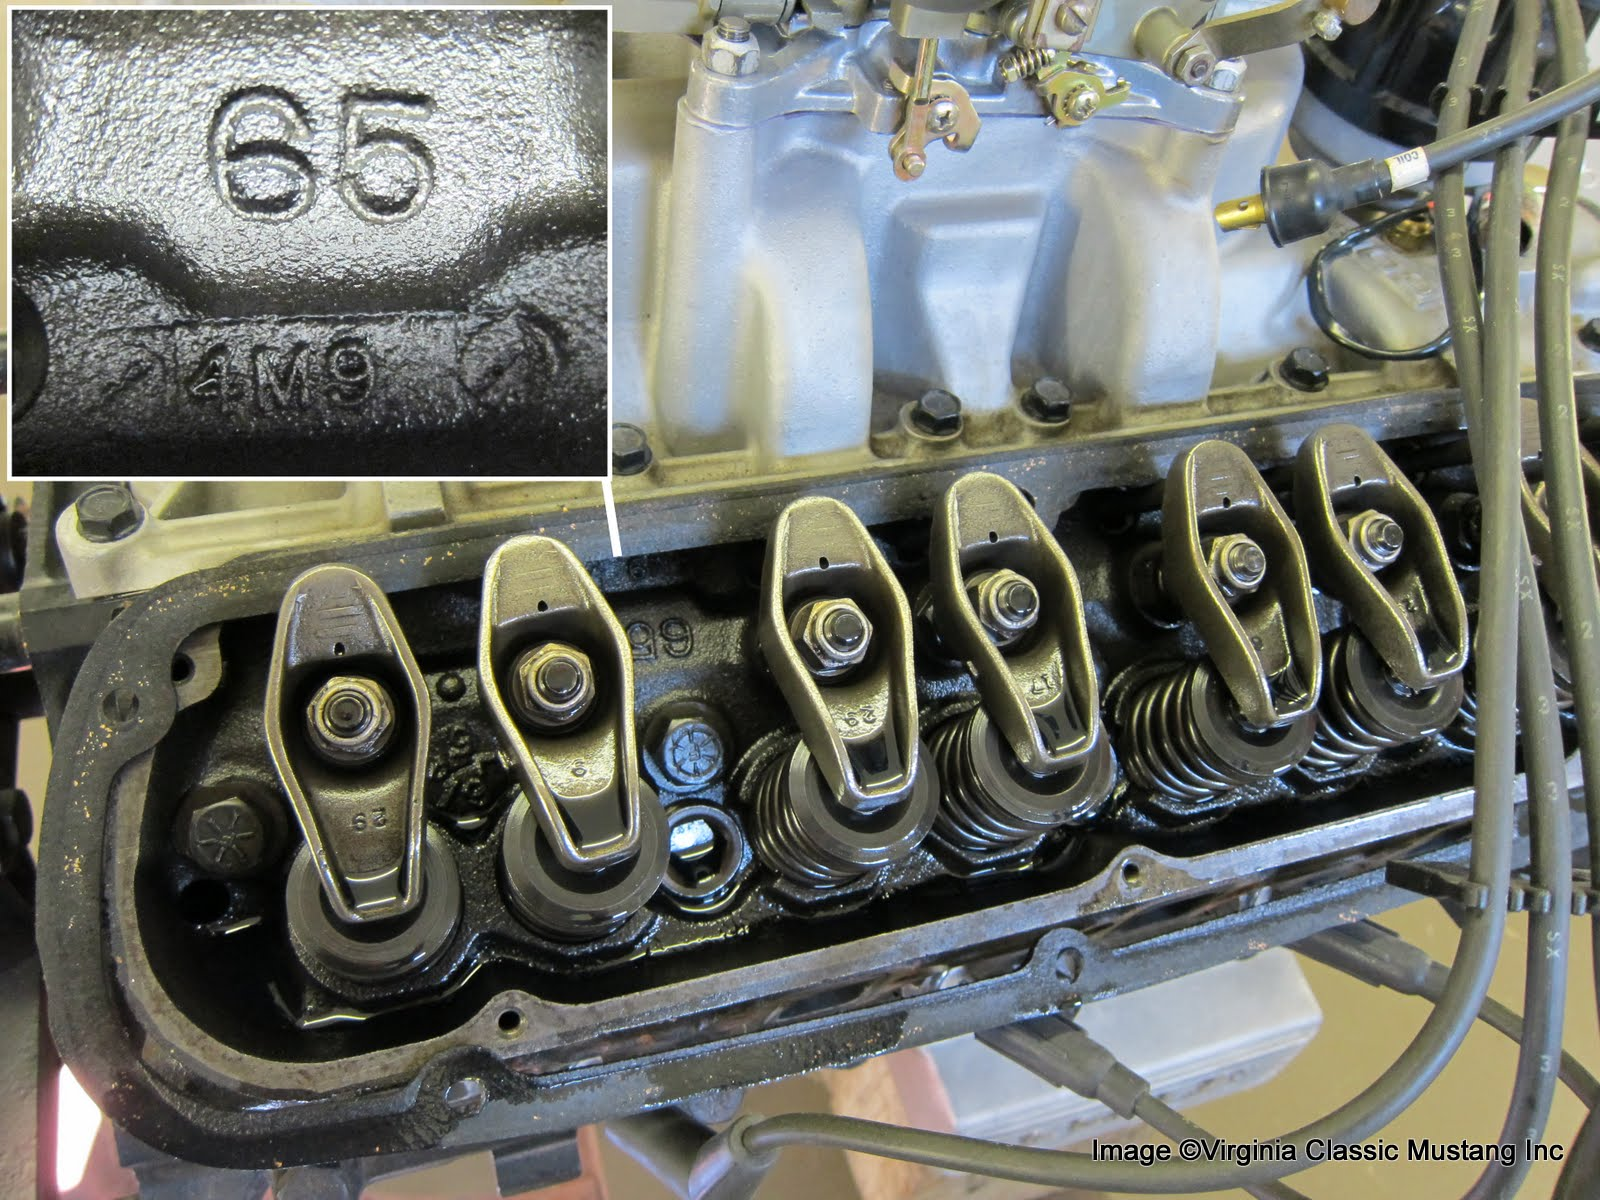 virginia classic mustang blog just the details 289 engine date cylinder heads also have casting dates these typically precede the engine casting date the 4m9 decodes as 9 1964 virginiaclassicmustang com